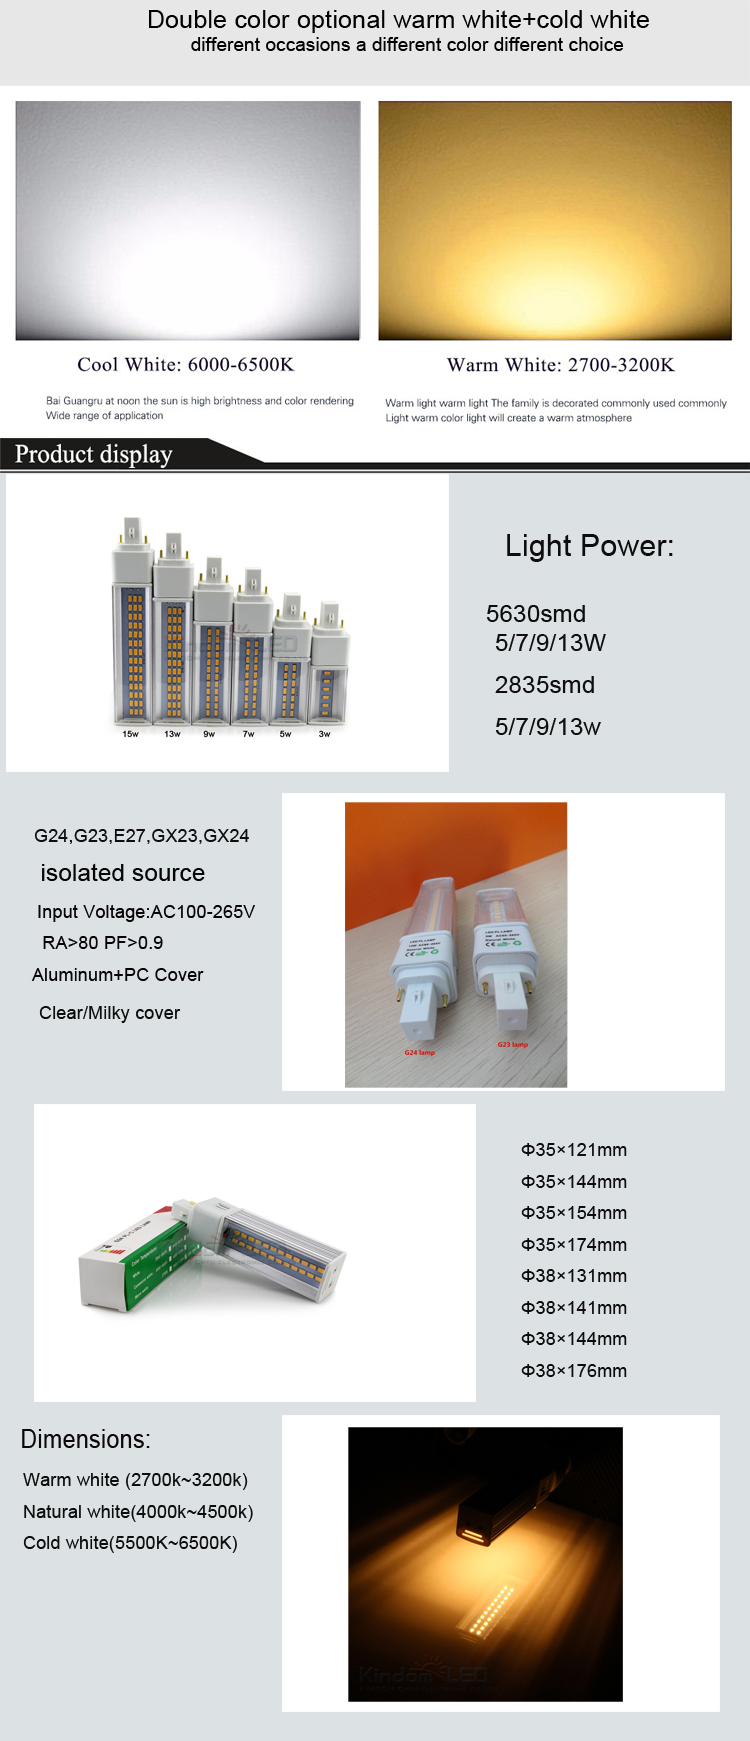 Color Box packing RA>80 Isolate Source G24 PL 13W Led Lamp 4000K 3000K 6000K